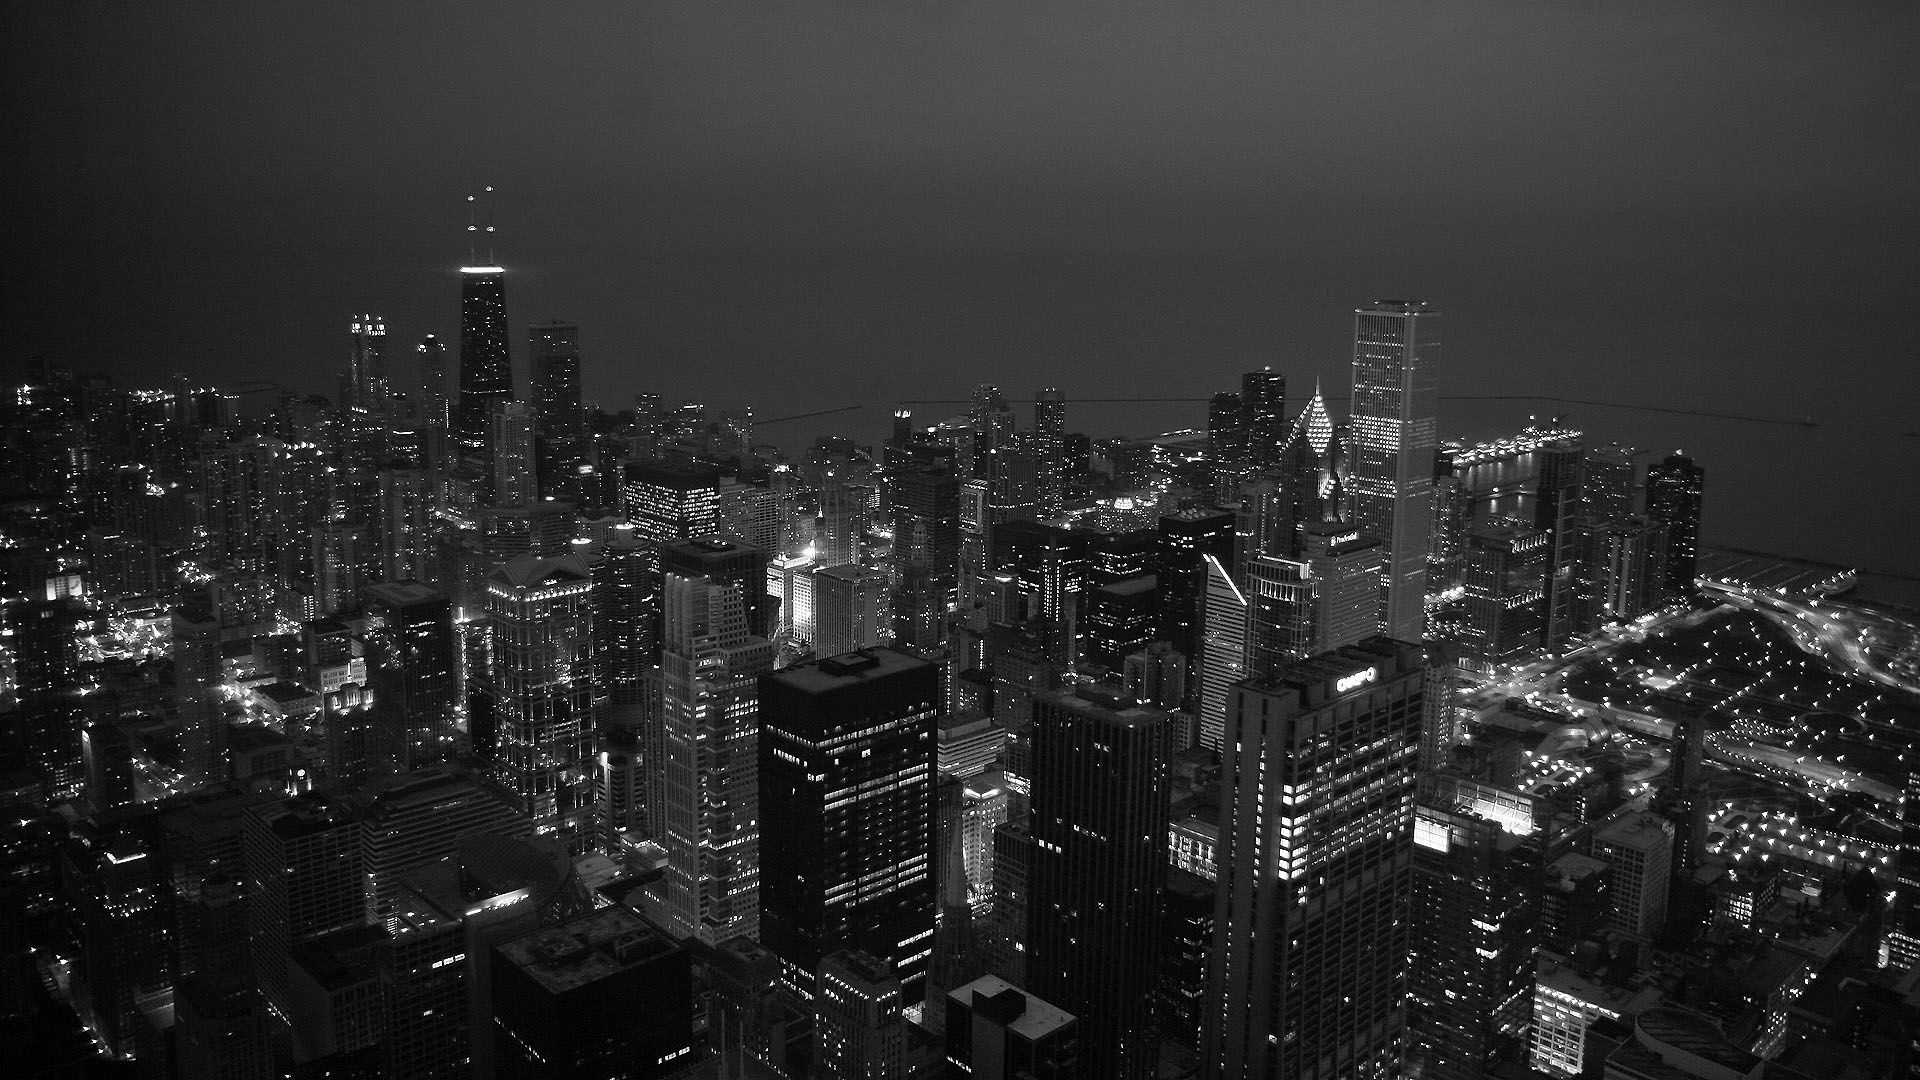 Black And White Hd Wallpapers Black And White Wallpaper City Wallpaper Black And White City